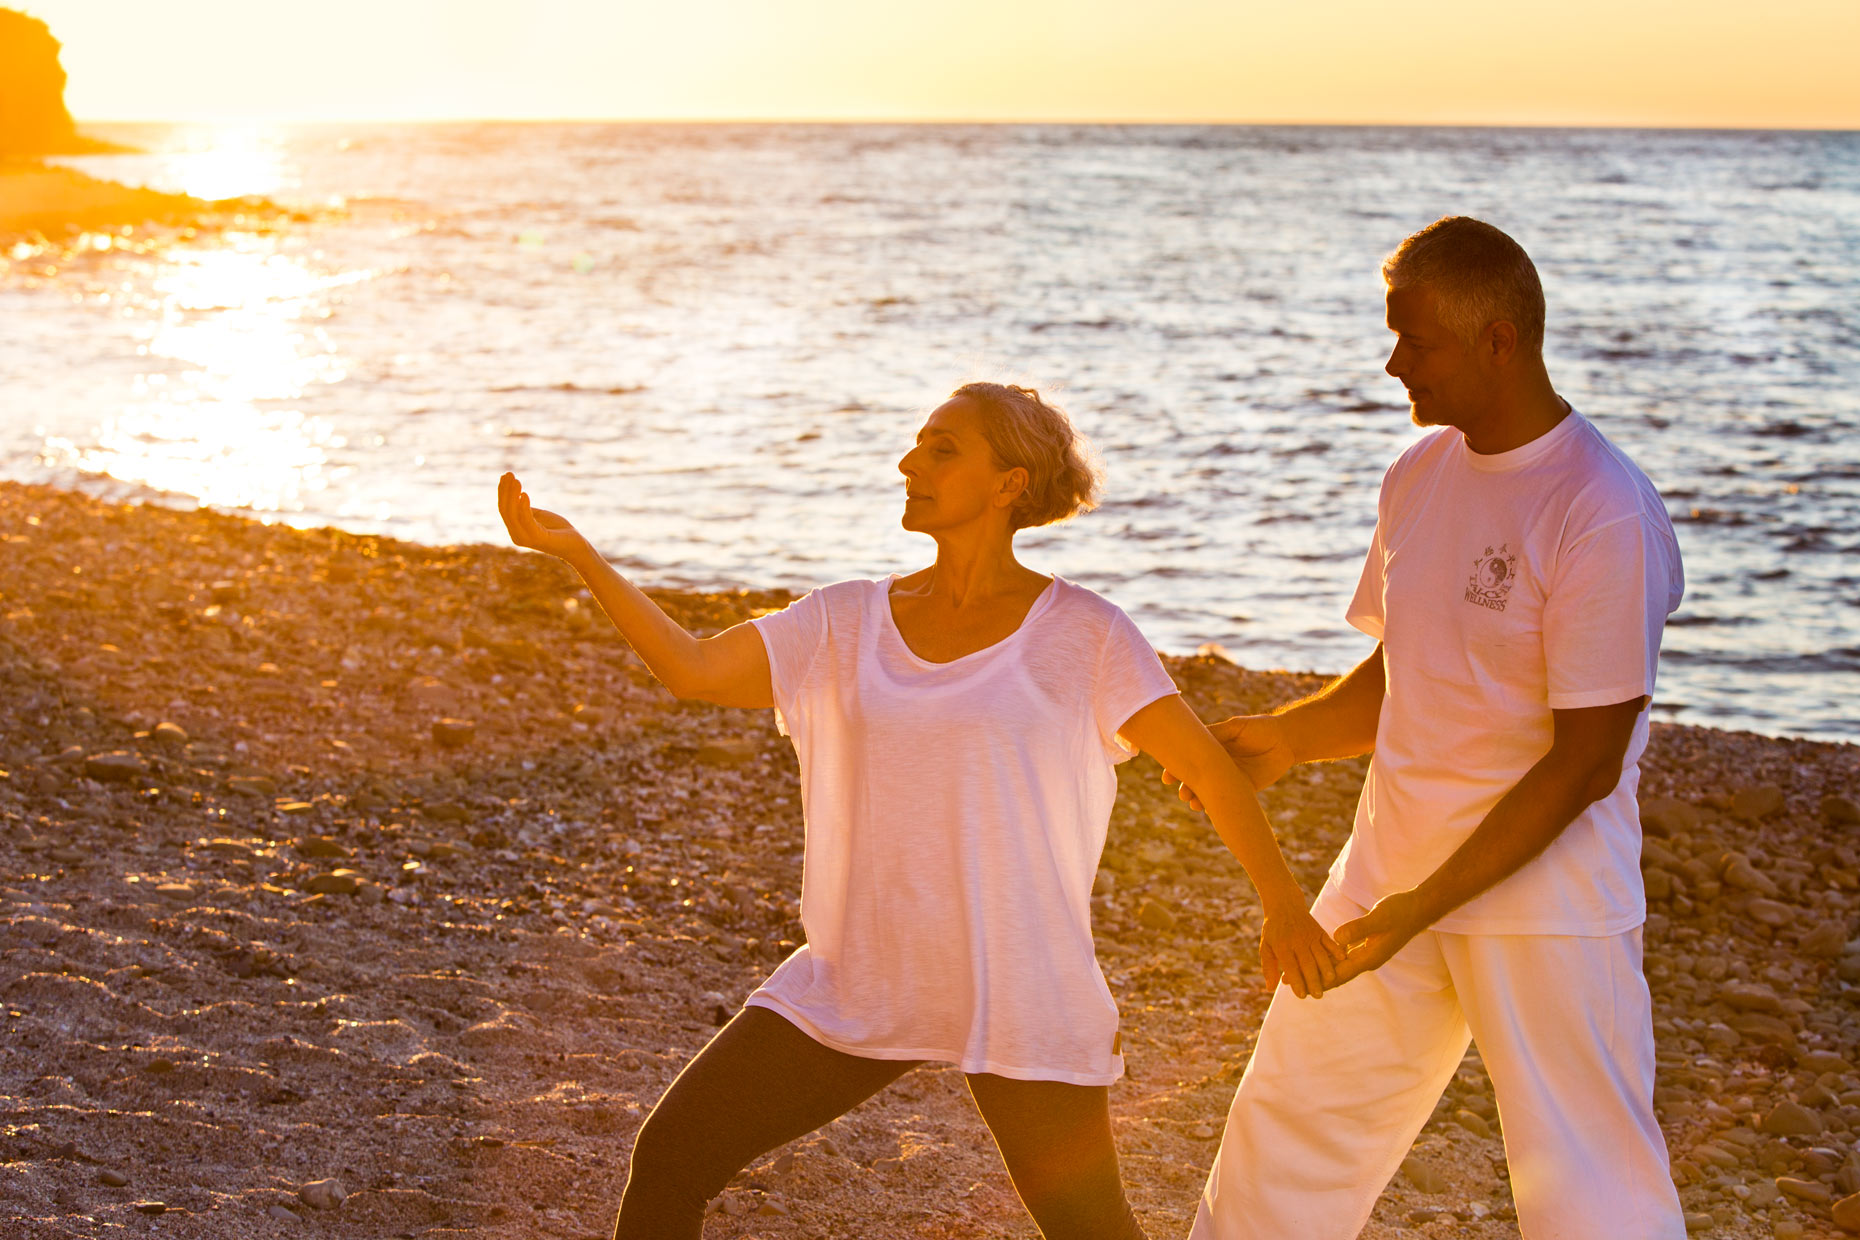 tai chi on beach